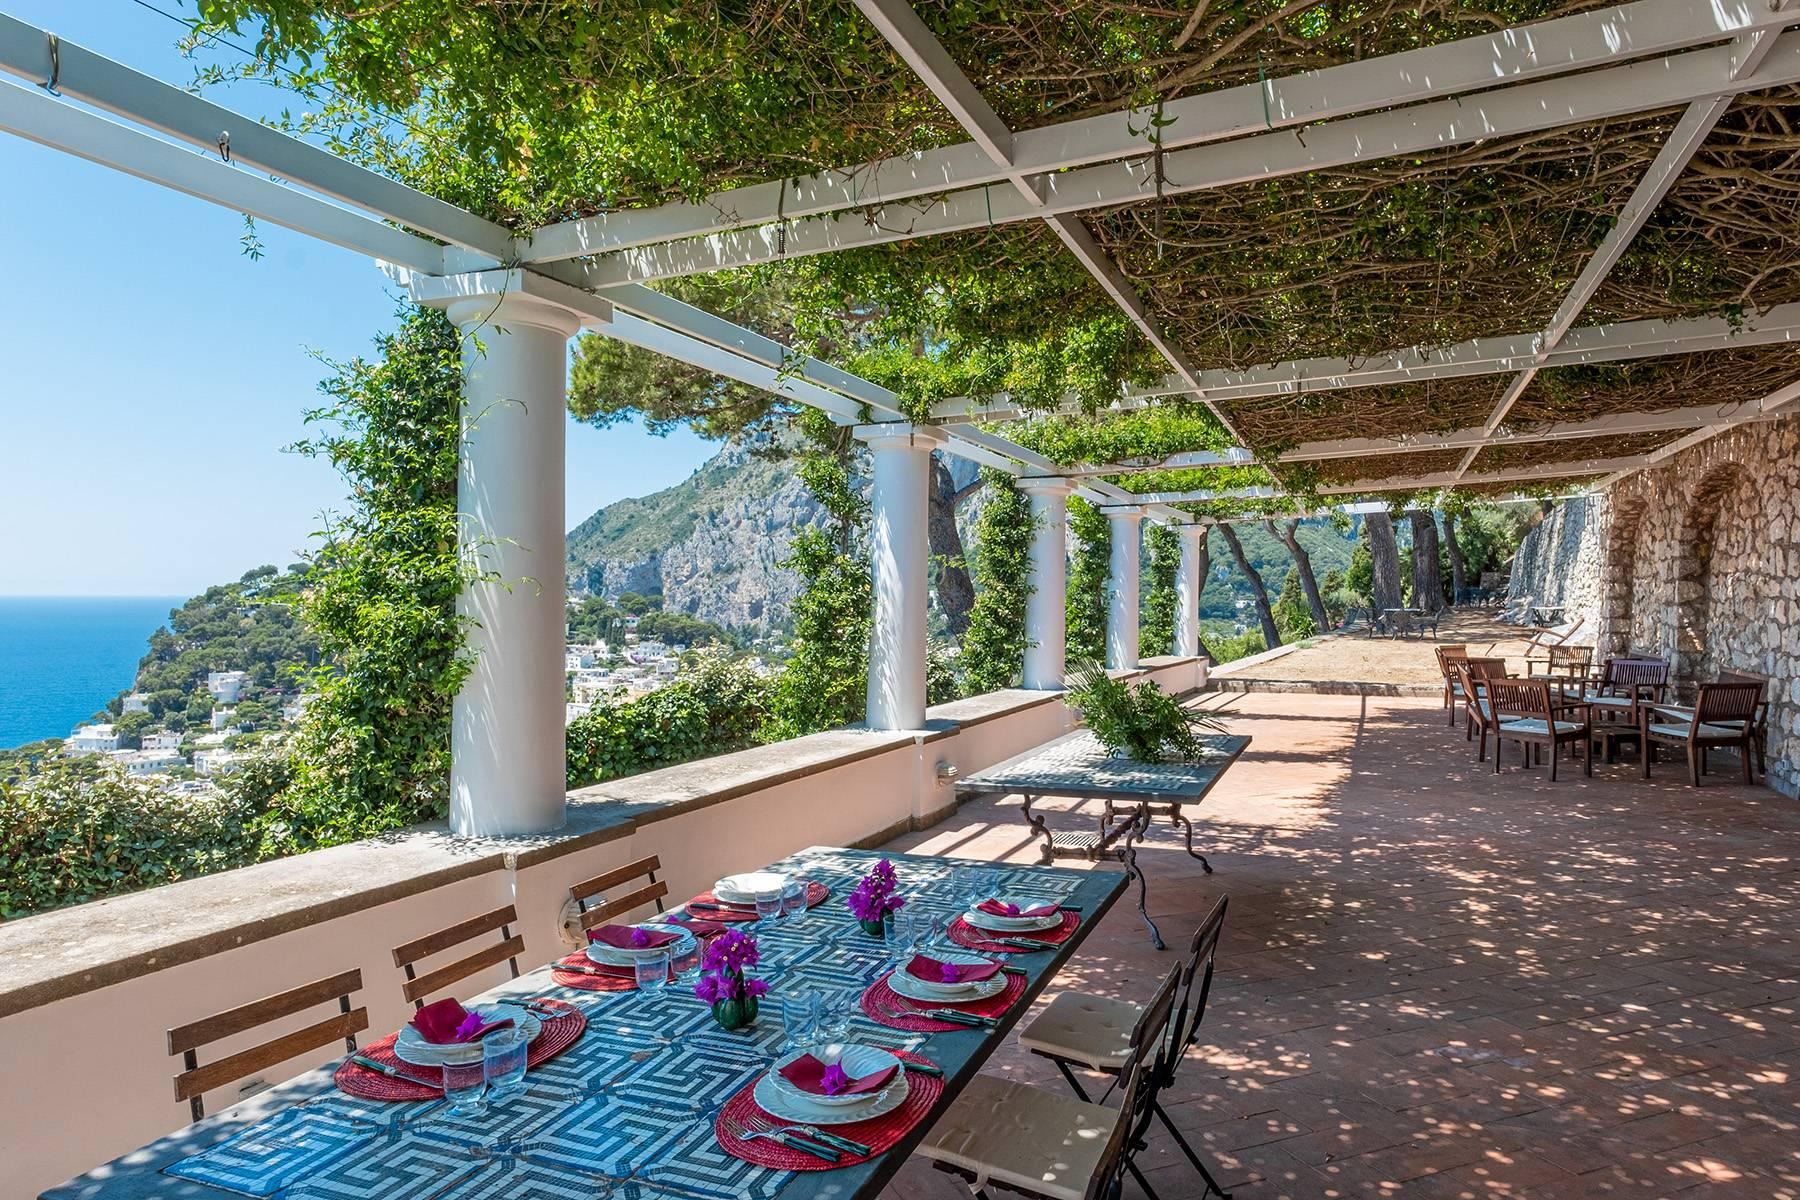 Stunning villa with swimming pool overlooking Capri and the sea - 3